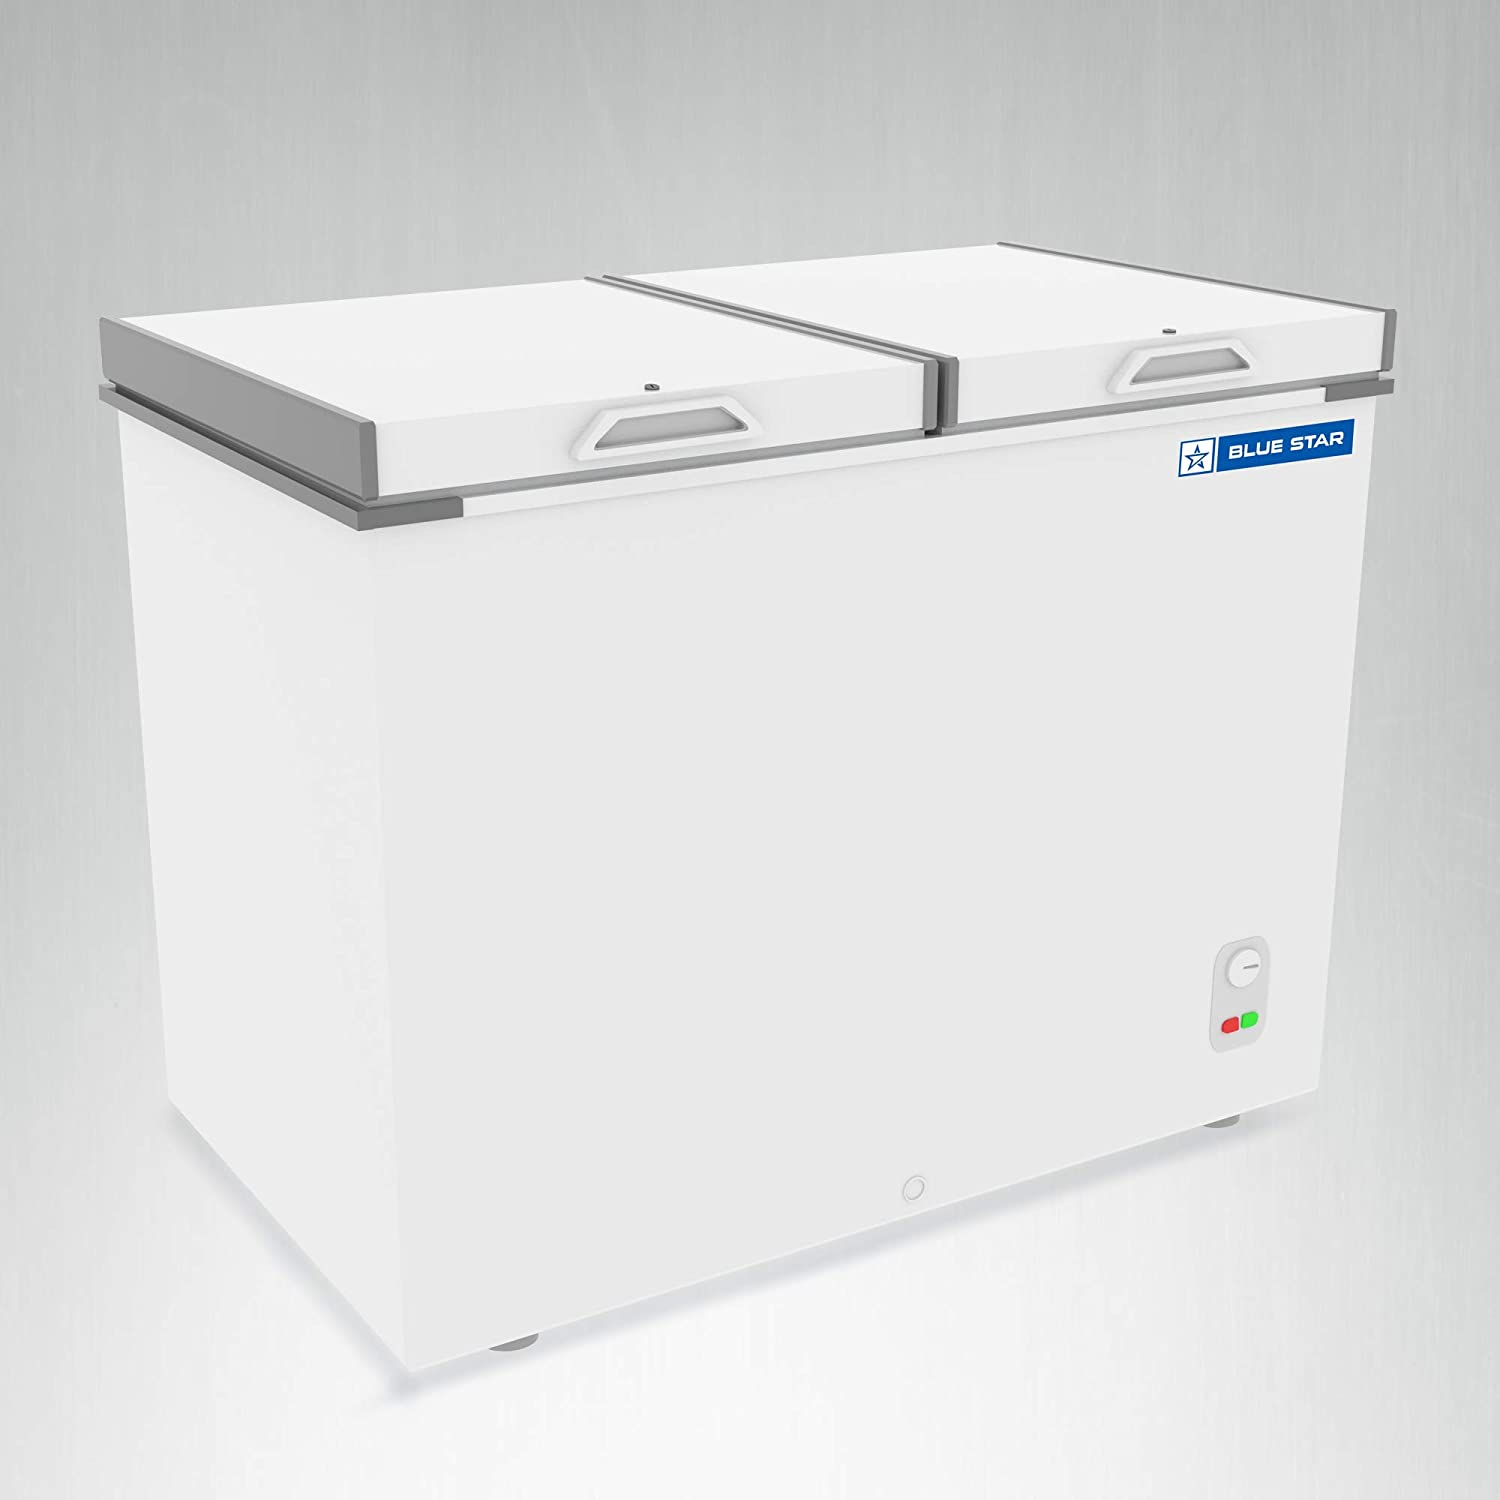 Blue Star CHF500 Double Door Deep Freezer (484 L, White)